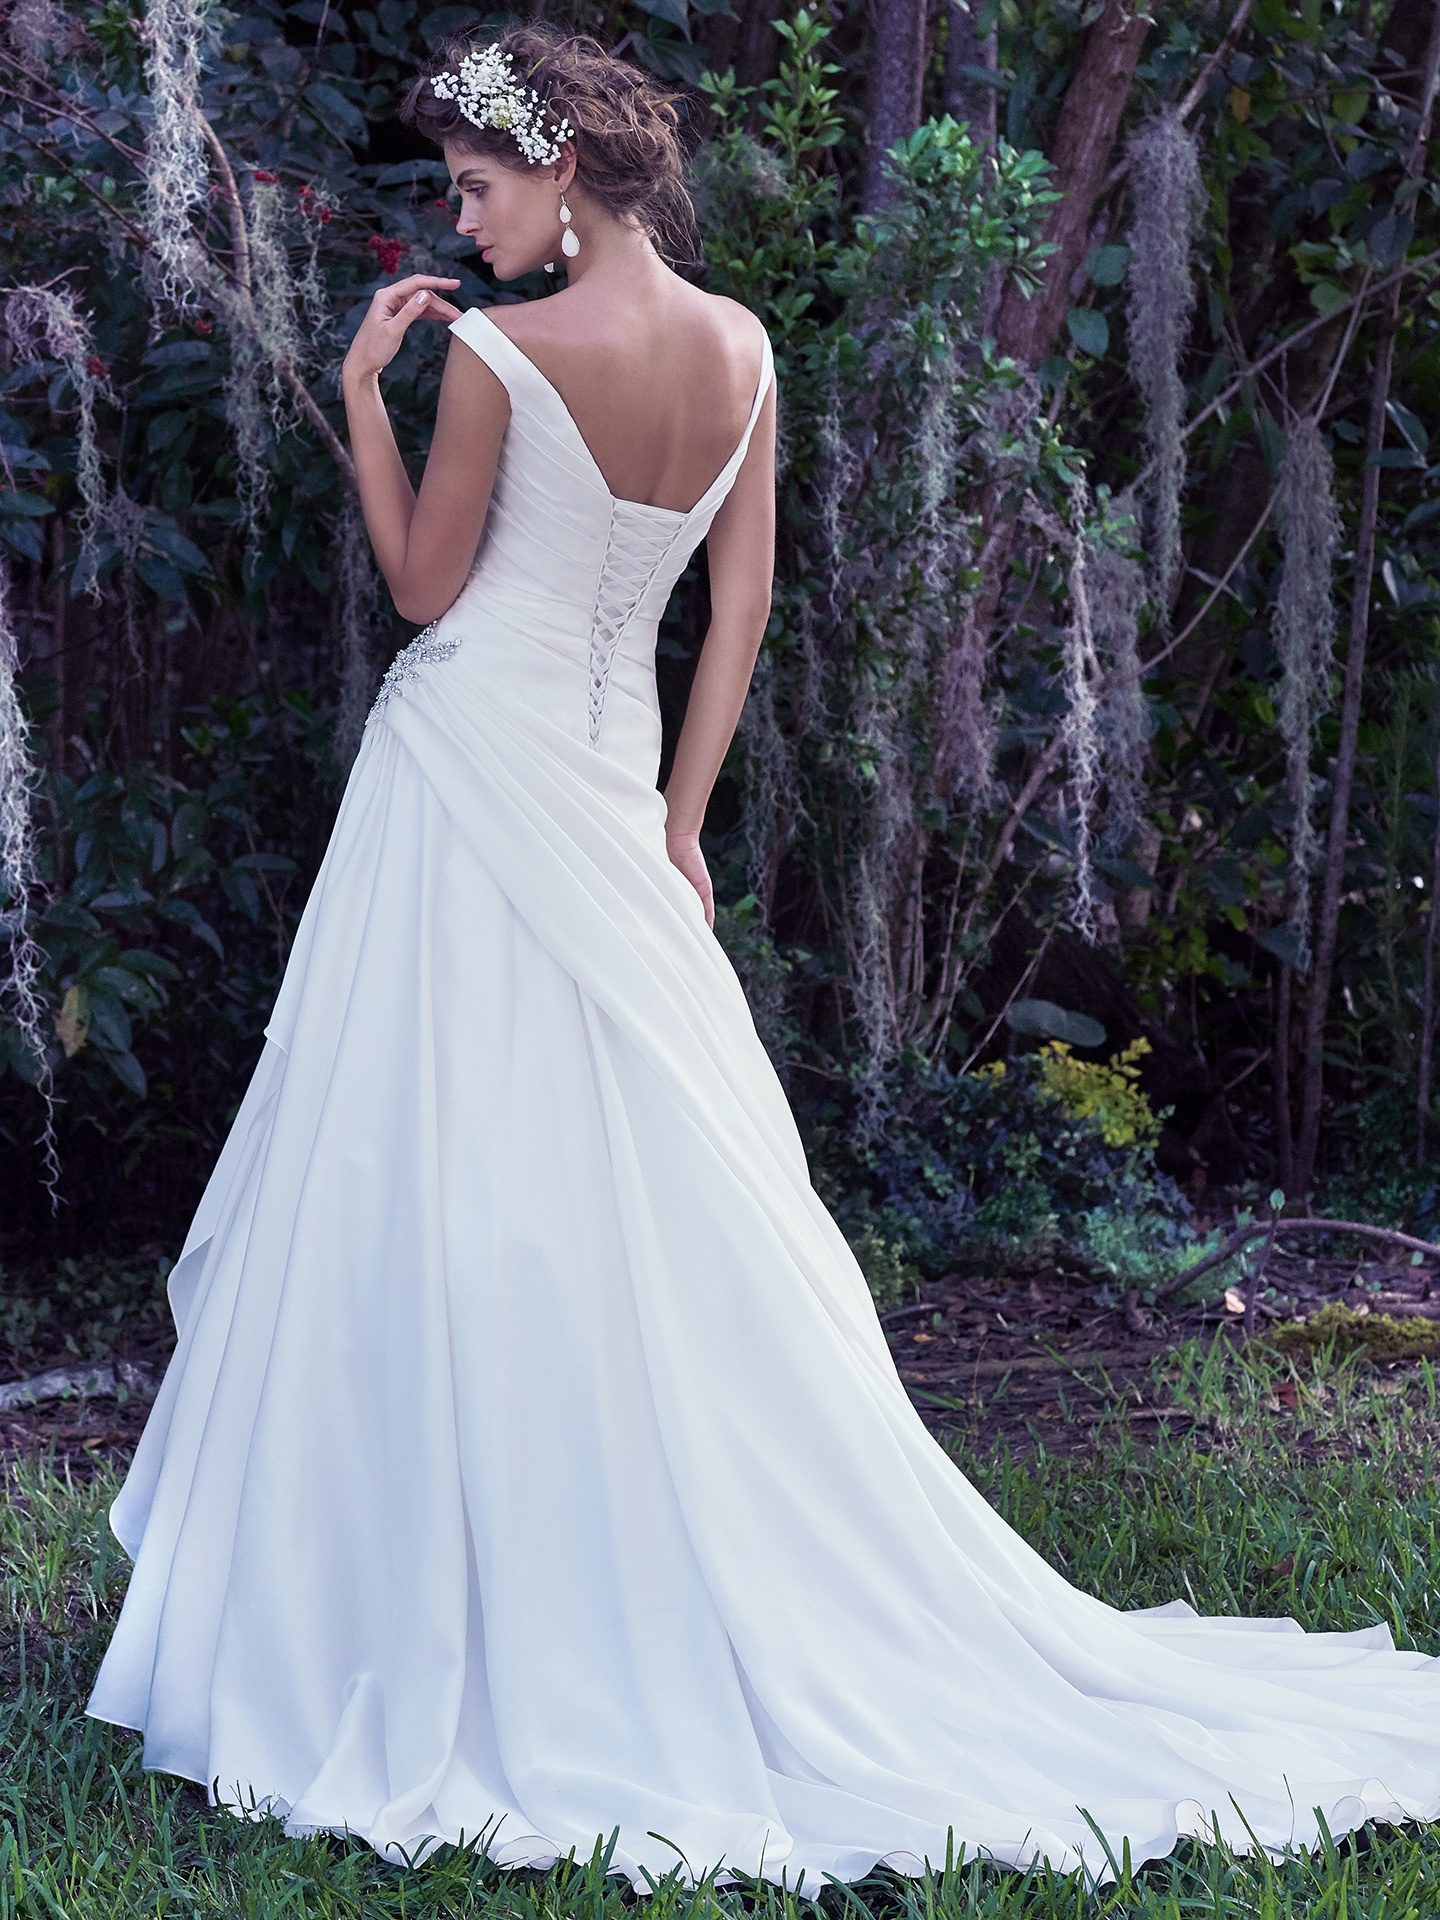 Wedding Gowns That Look Great In Photos... There Are 29 And Counting ...